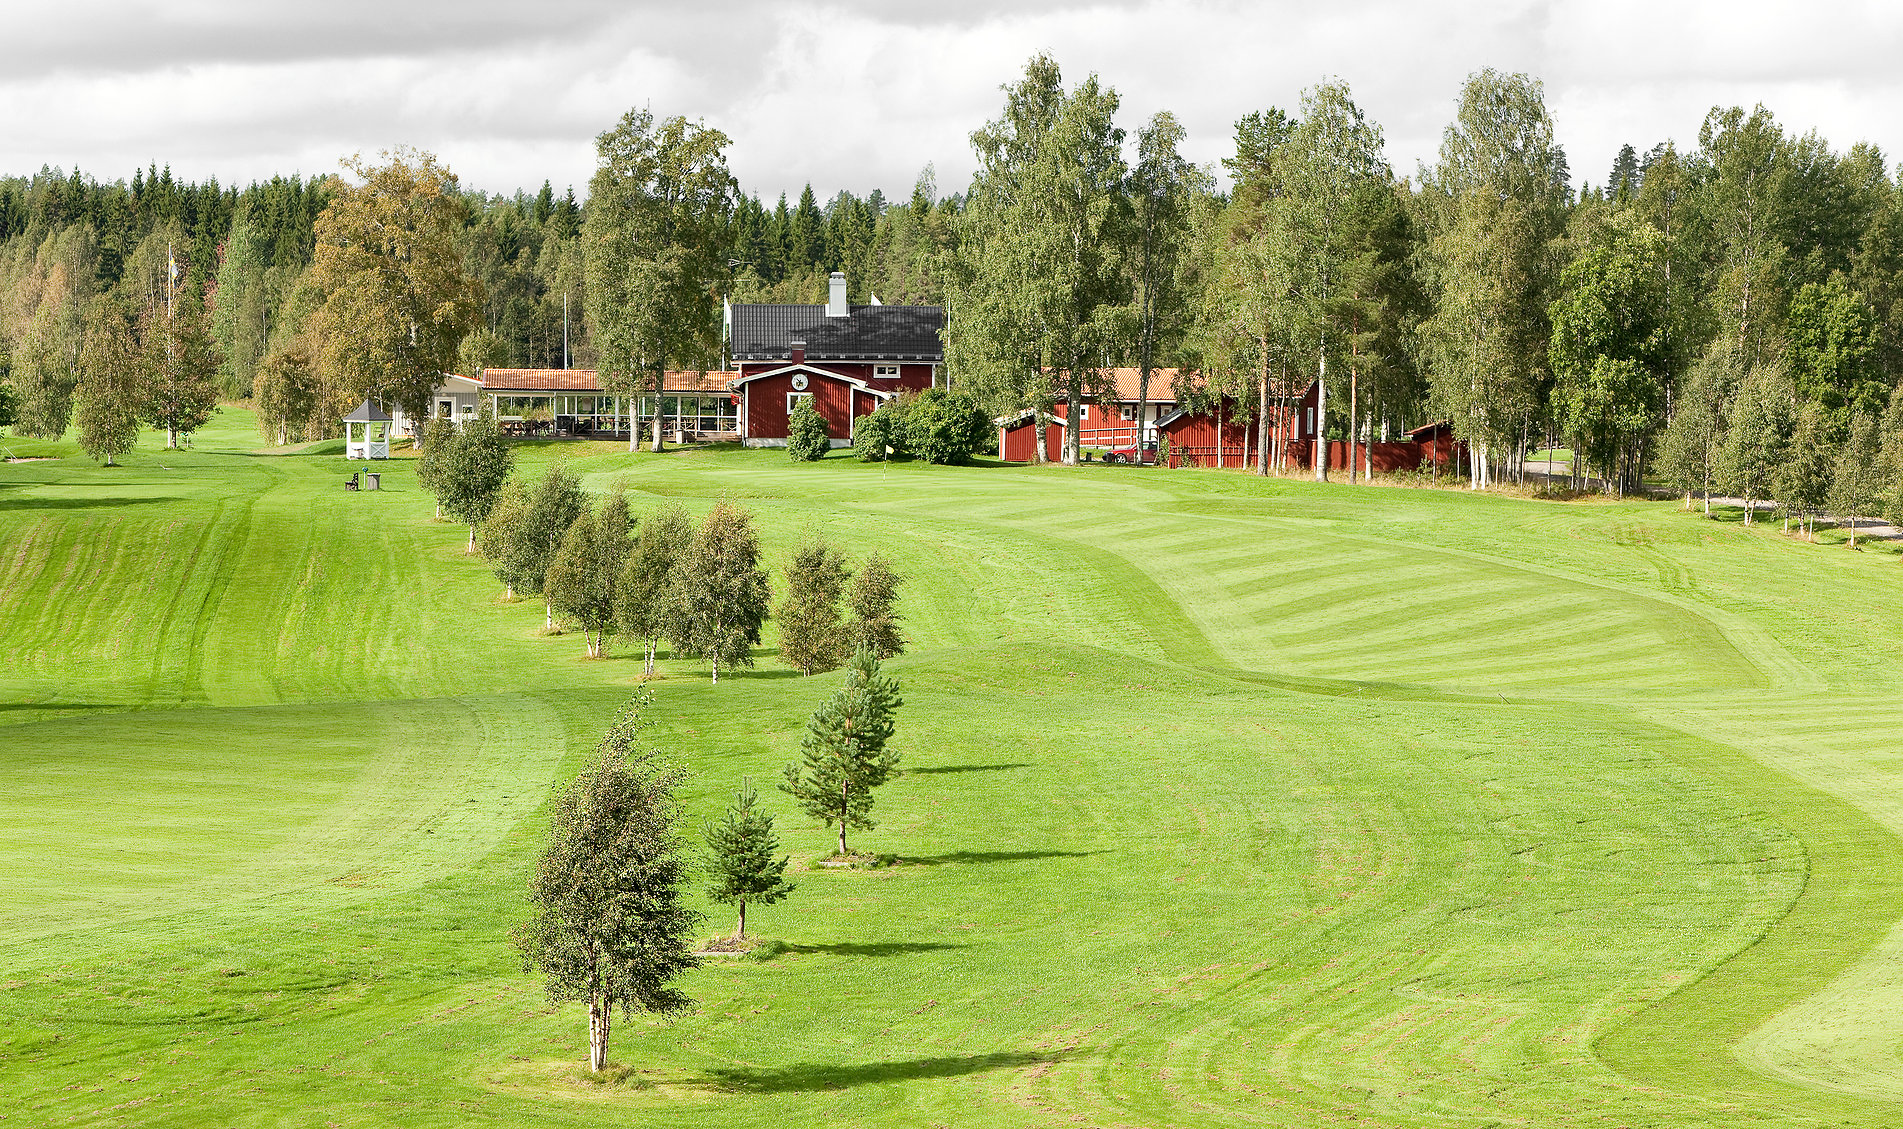 Overview of golf course named Sorfors Golfklubb